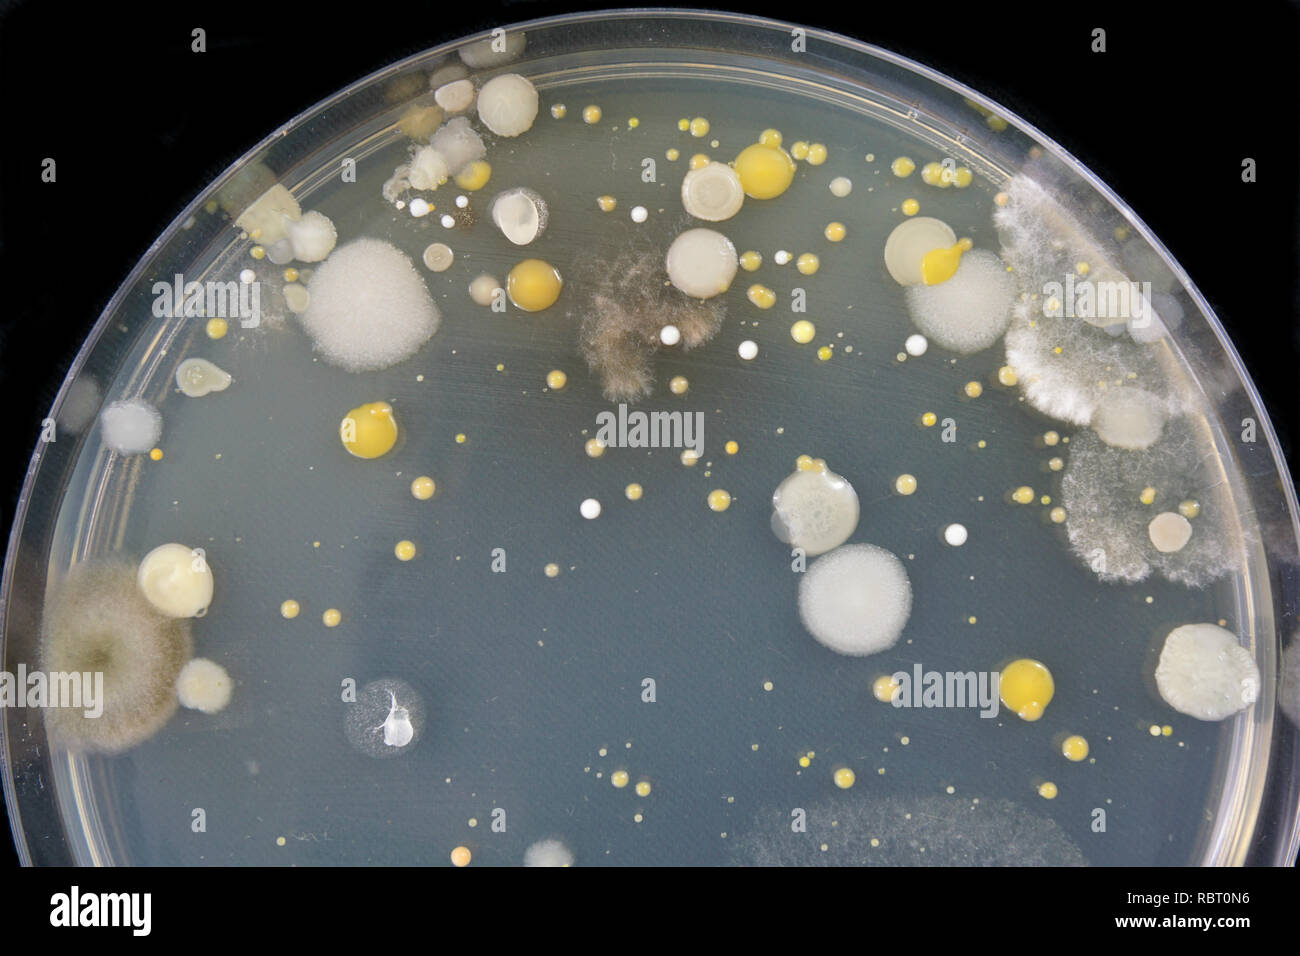 Close-up of bacteria and mold growing in a Petri dish. - Stock Image